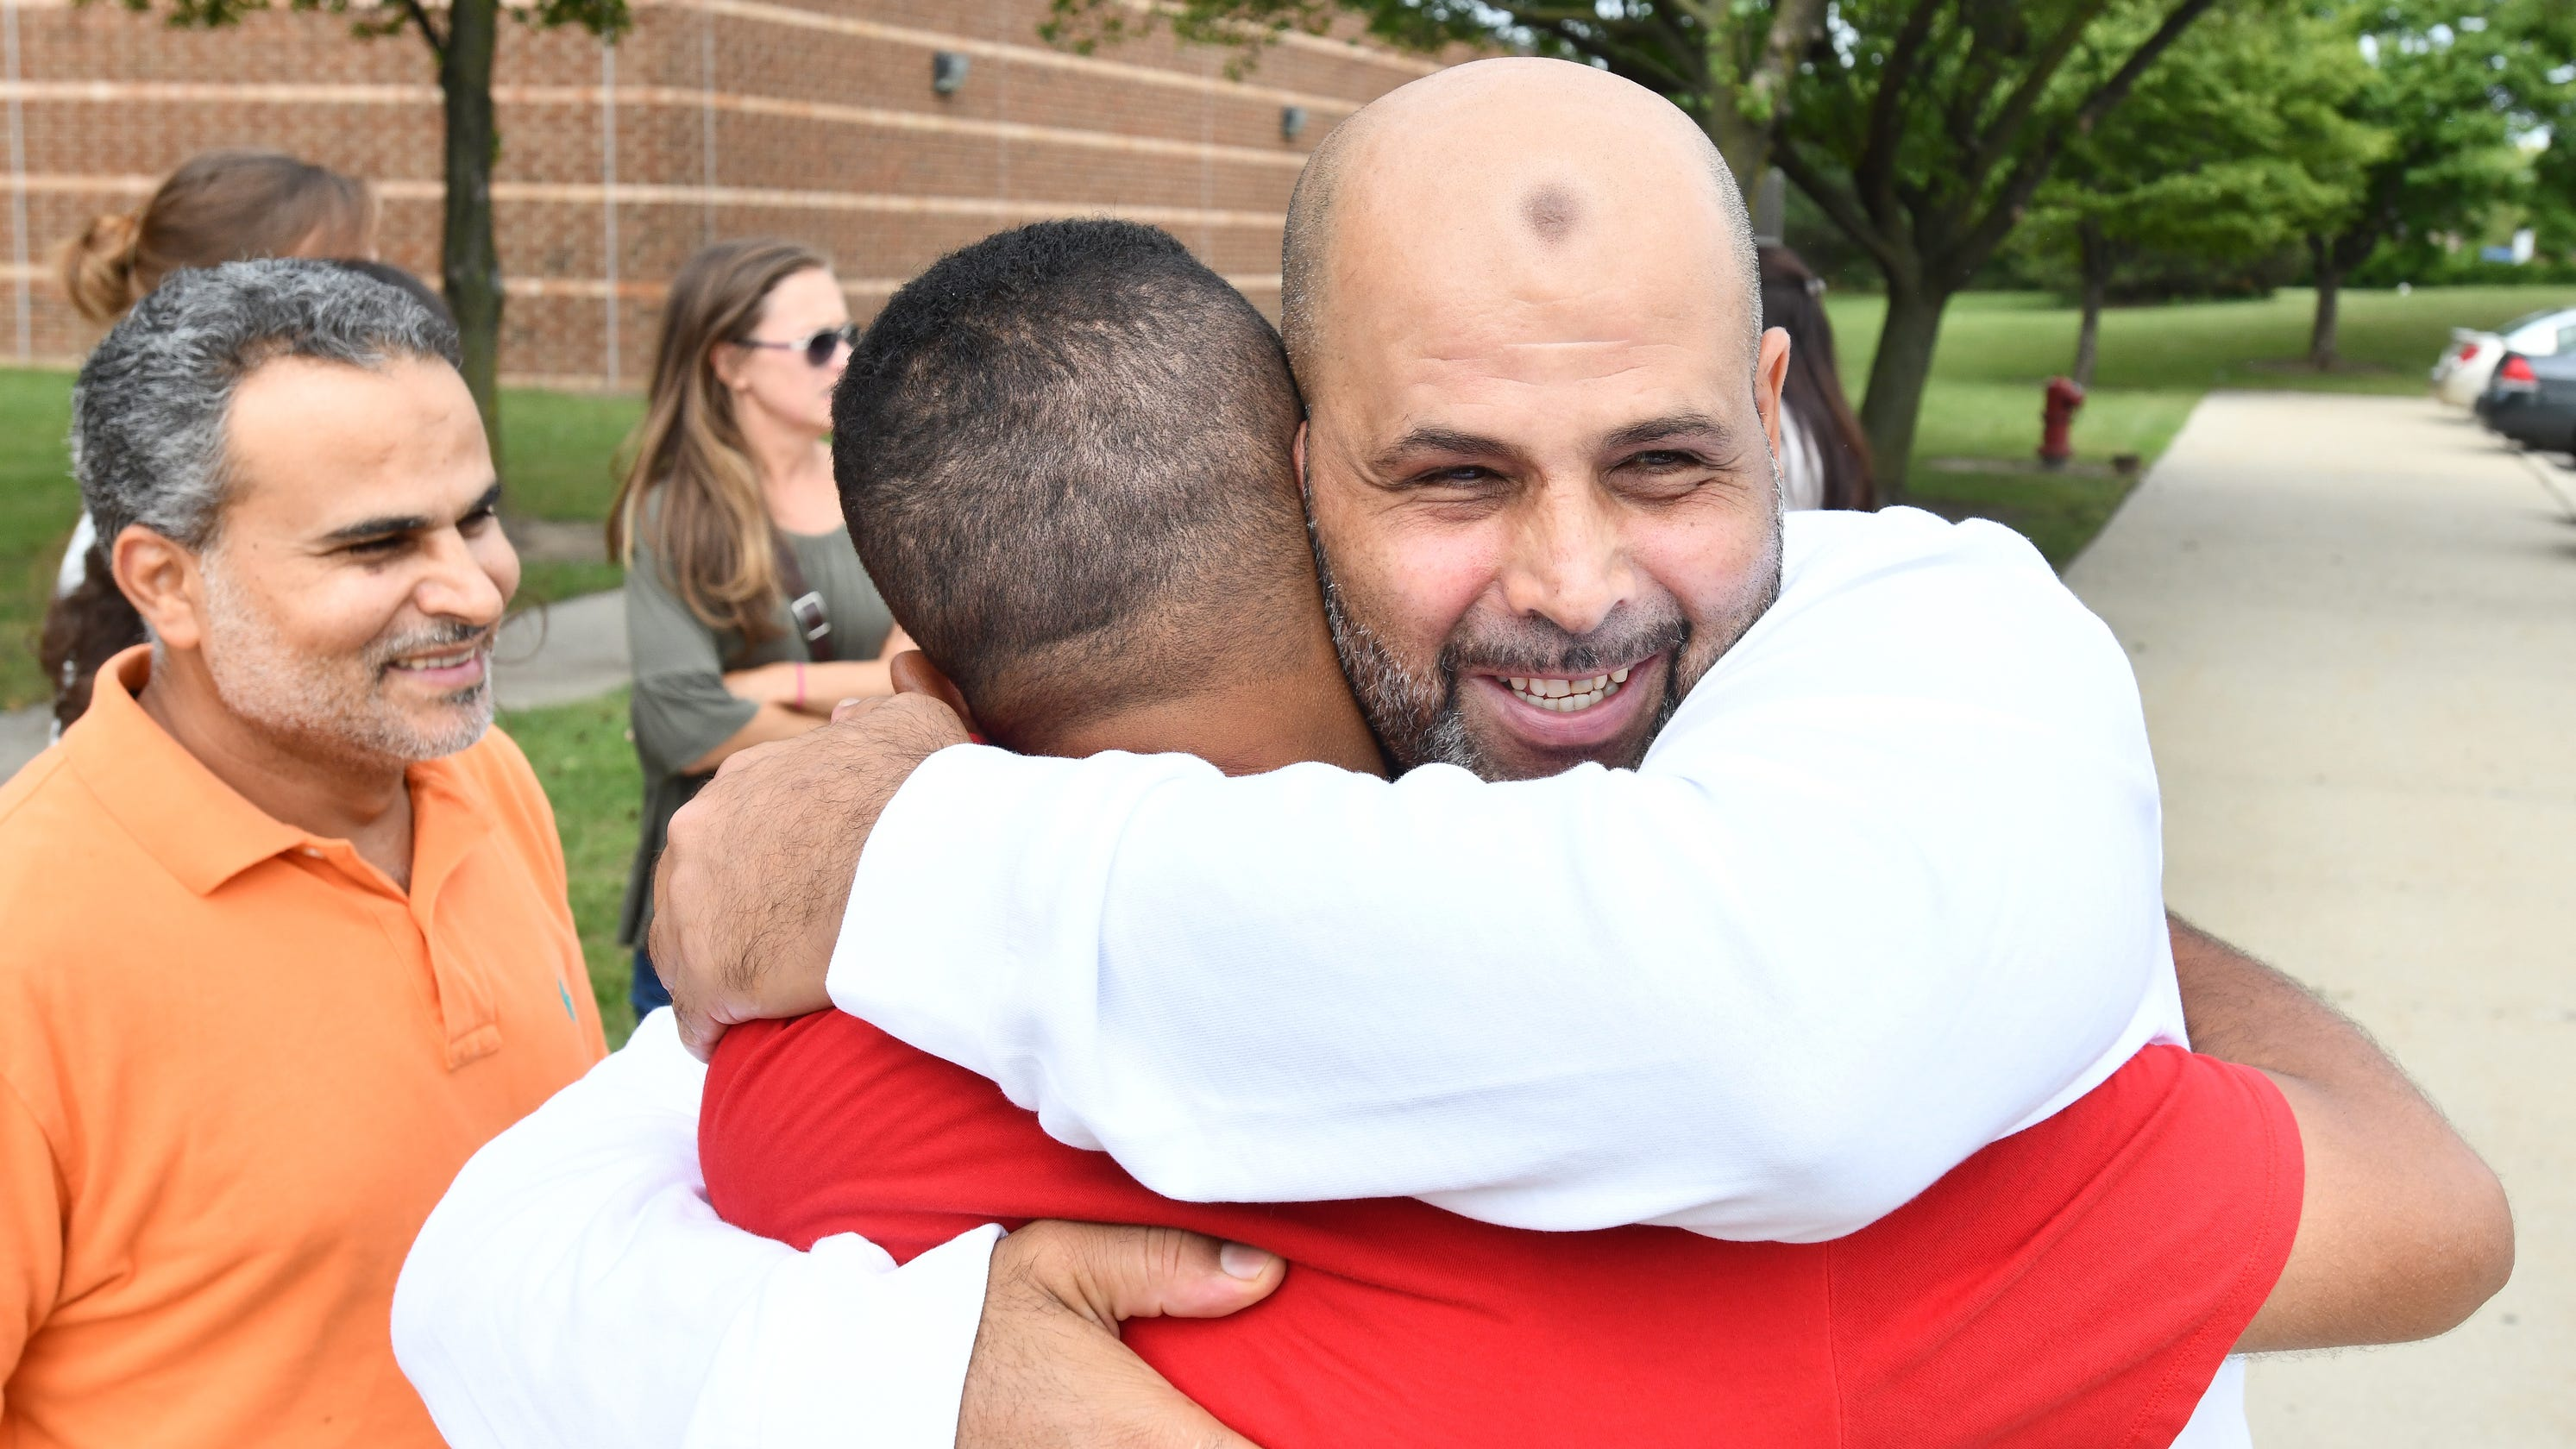 Man convicted of Detroit double murder released after 17 years